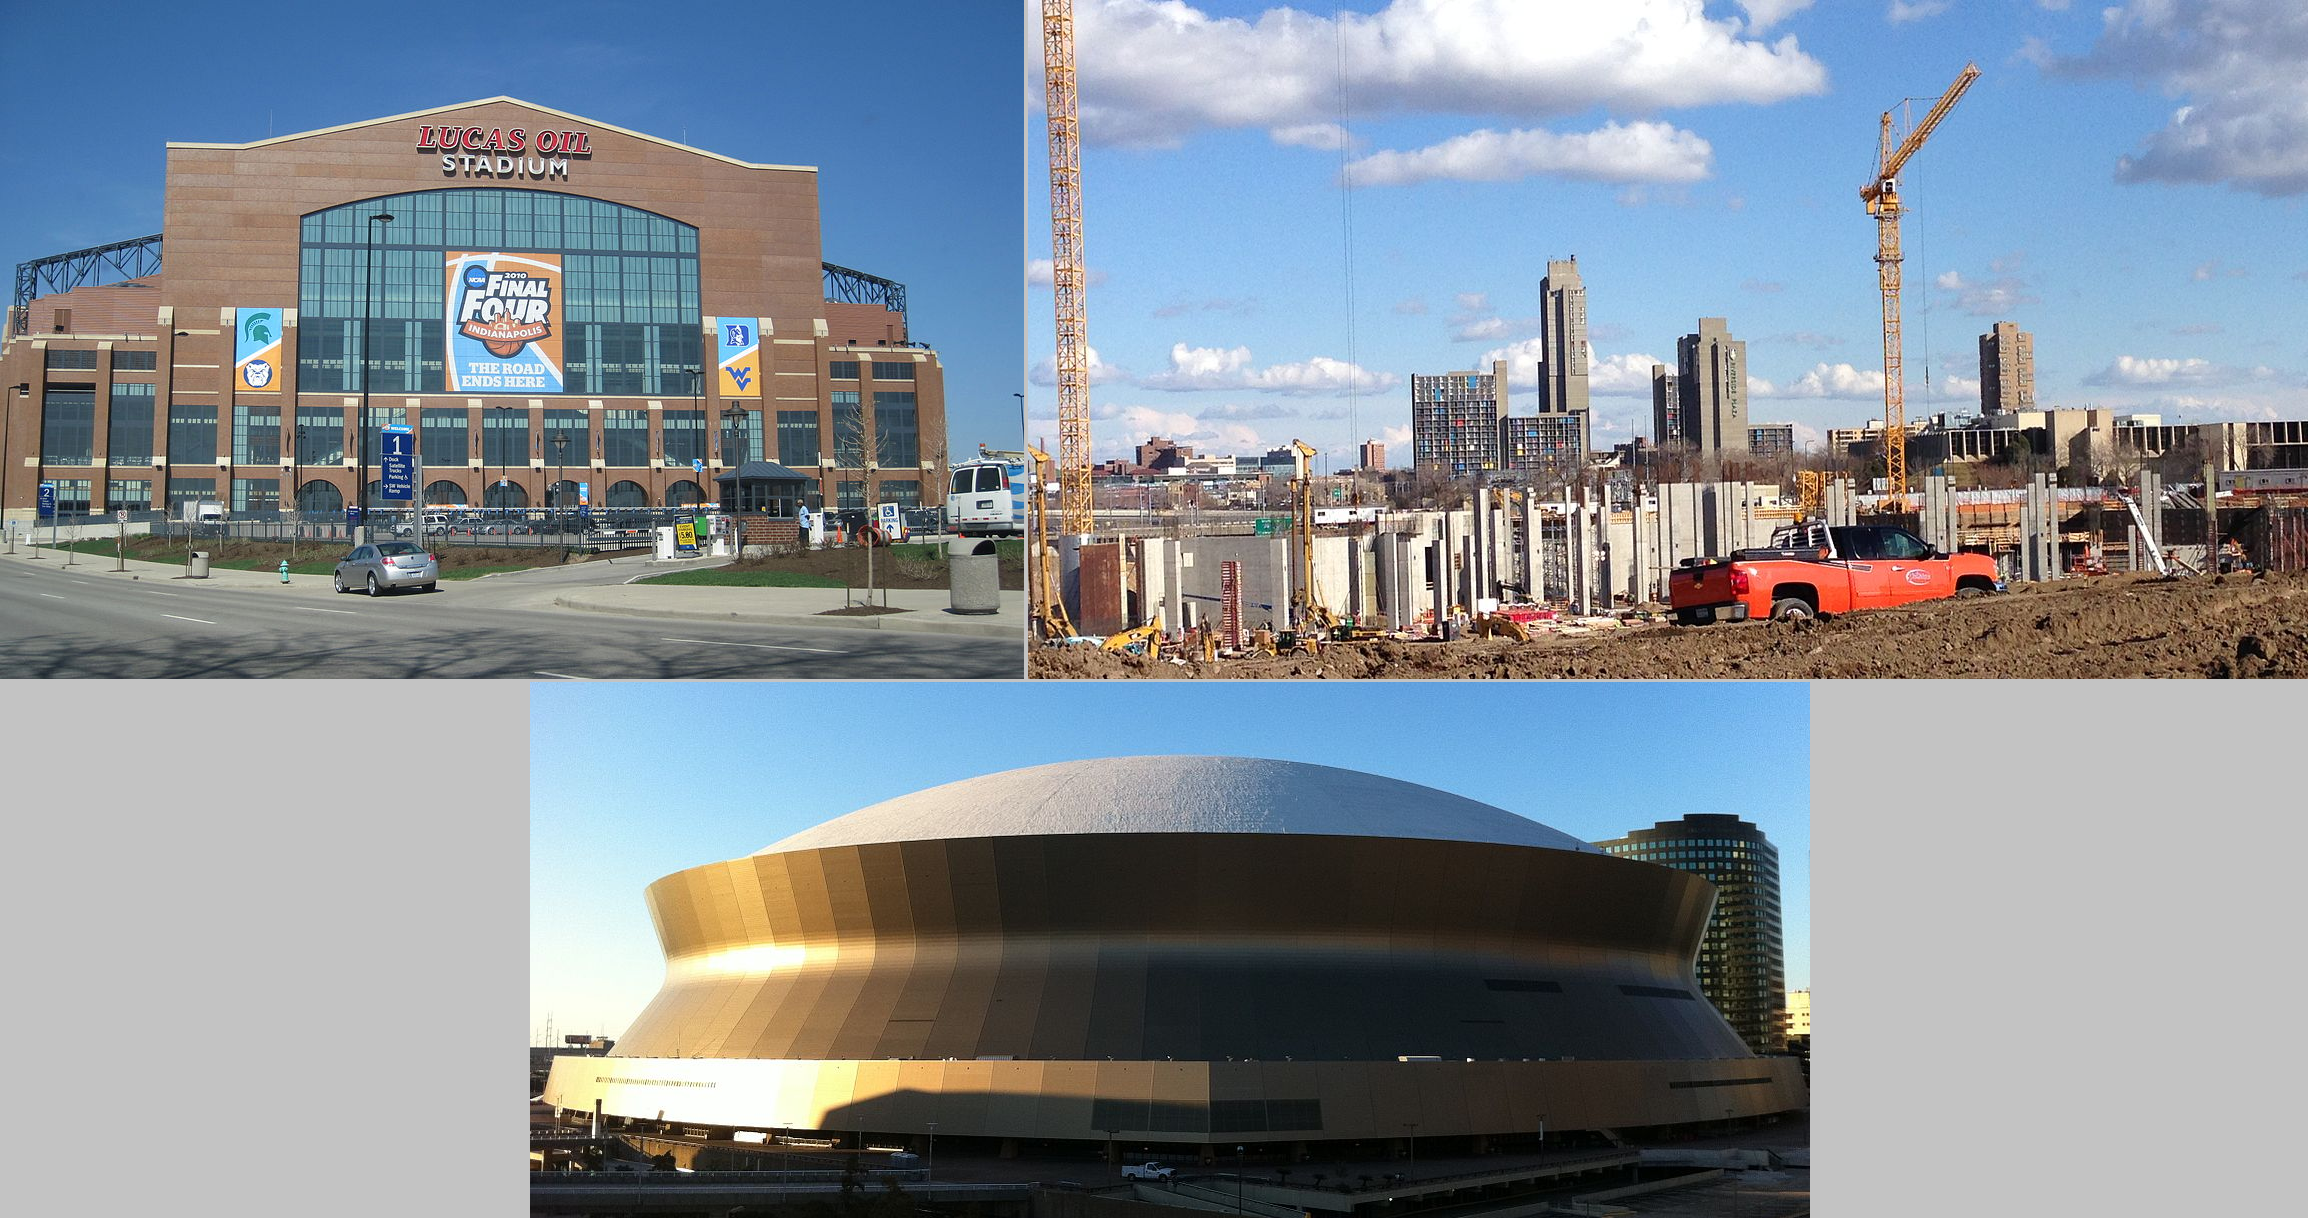 File:Super Bowl LII 2018 candidate stadiums.png - Wikipedia, the free